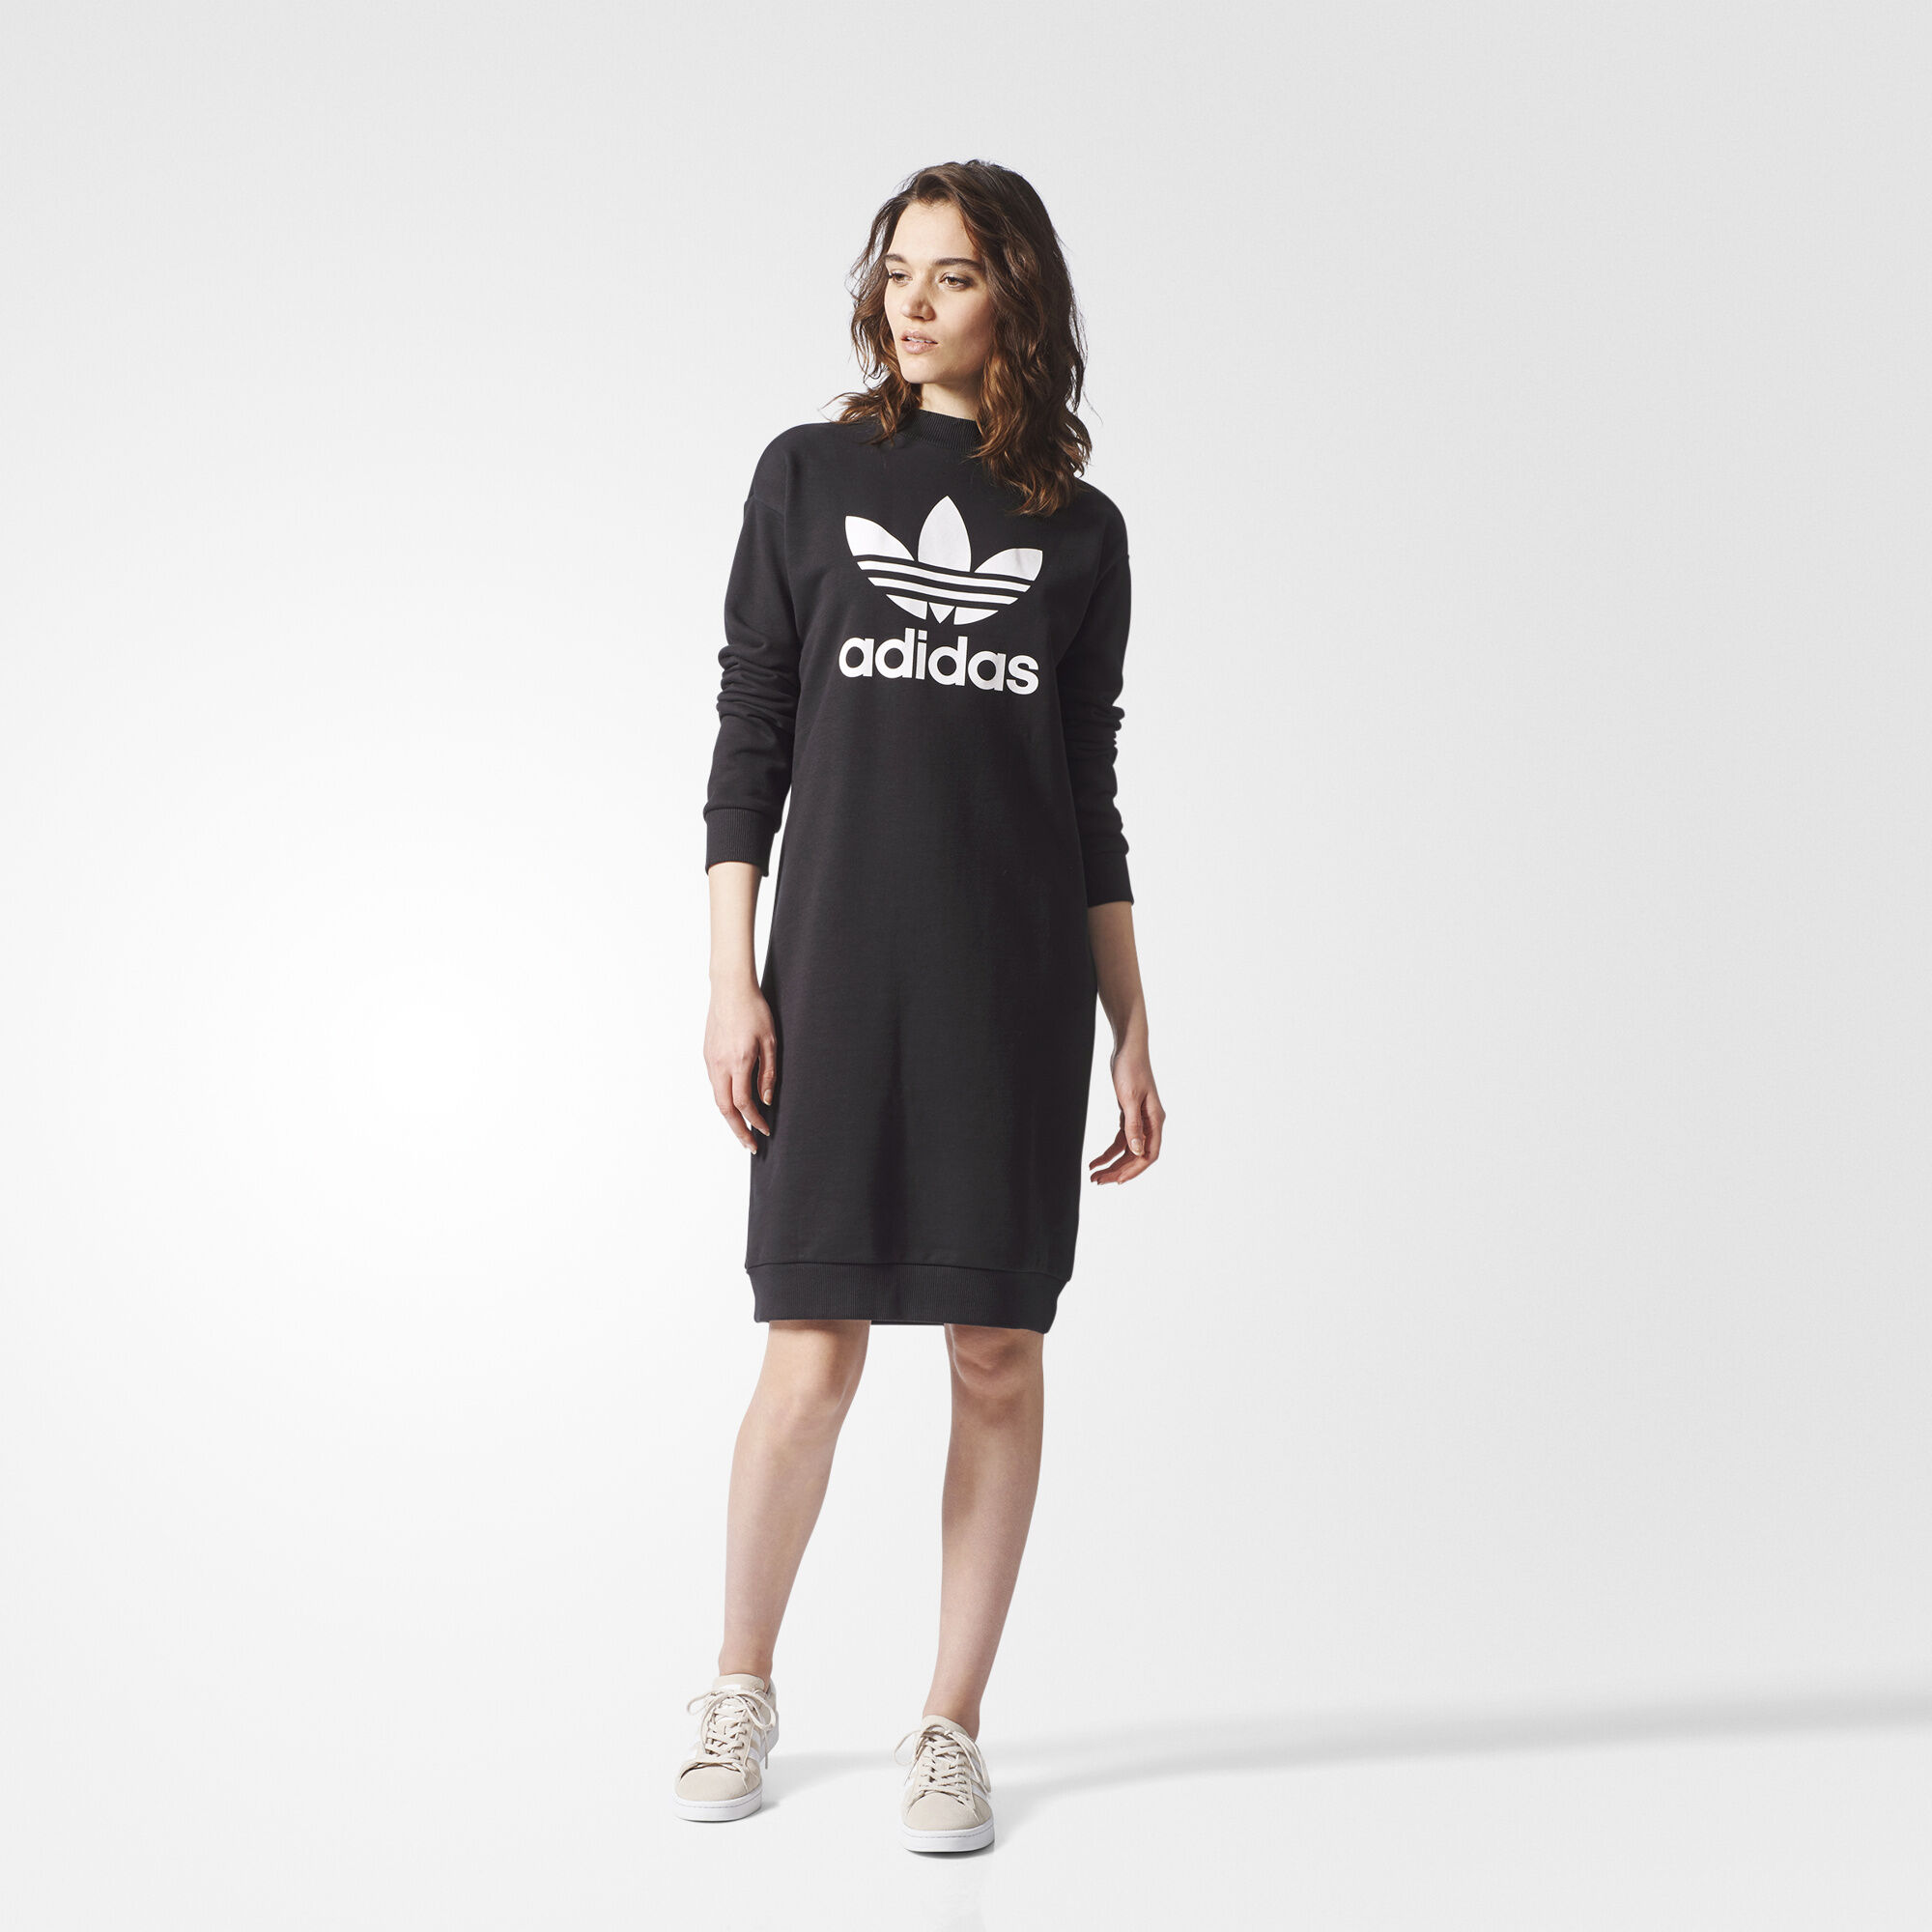 Black dress with adidas shoes - Adidas Trefoil Crew Dress Black Bp9370